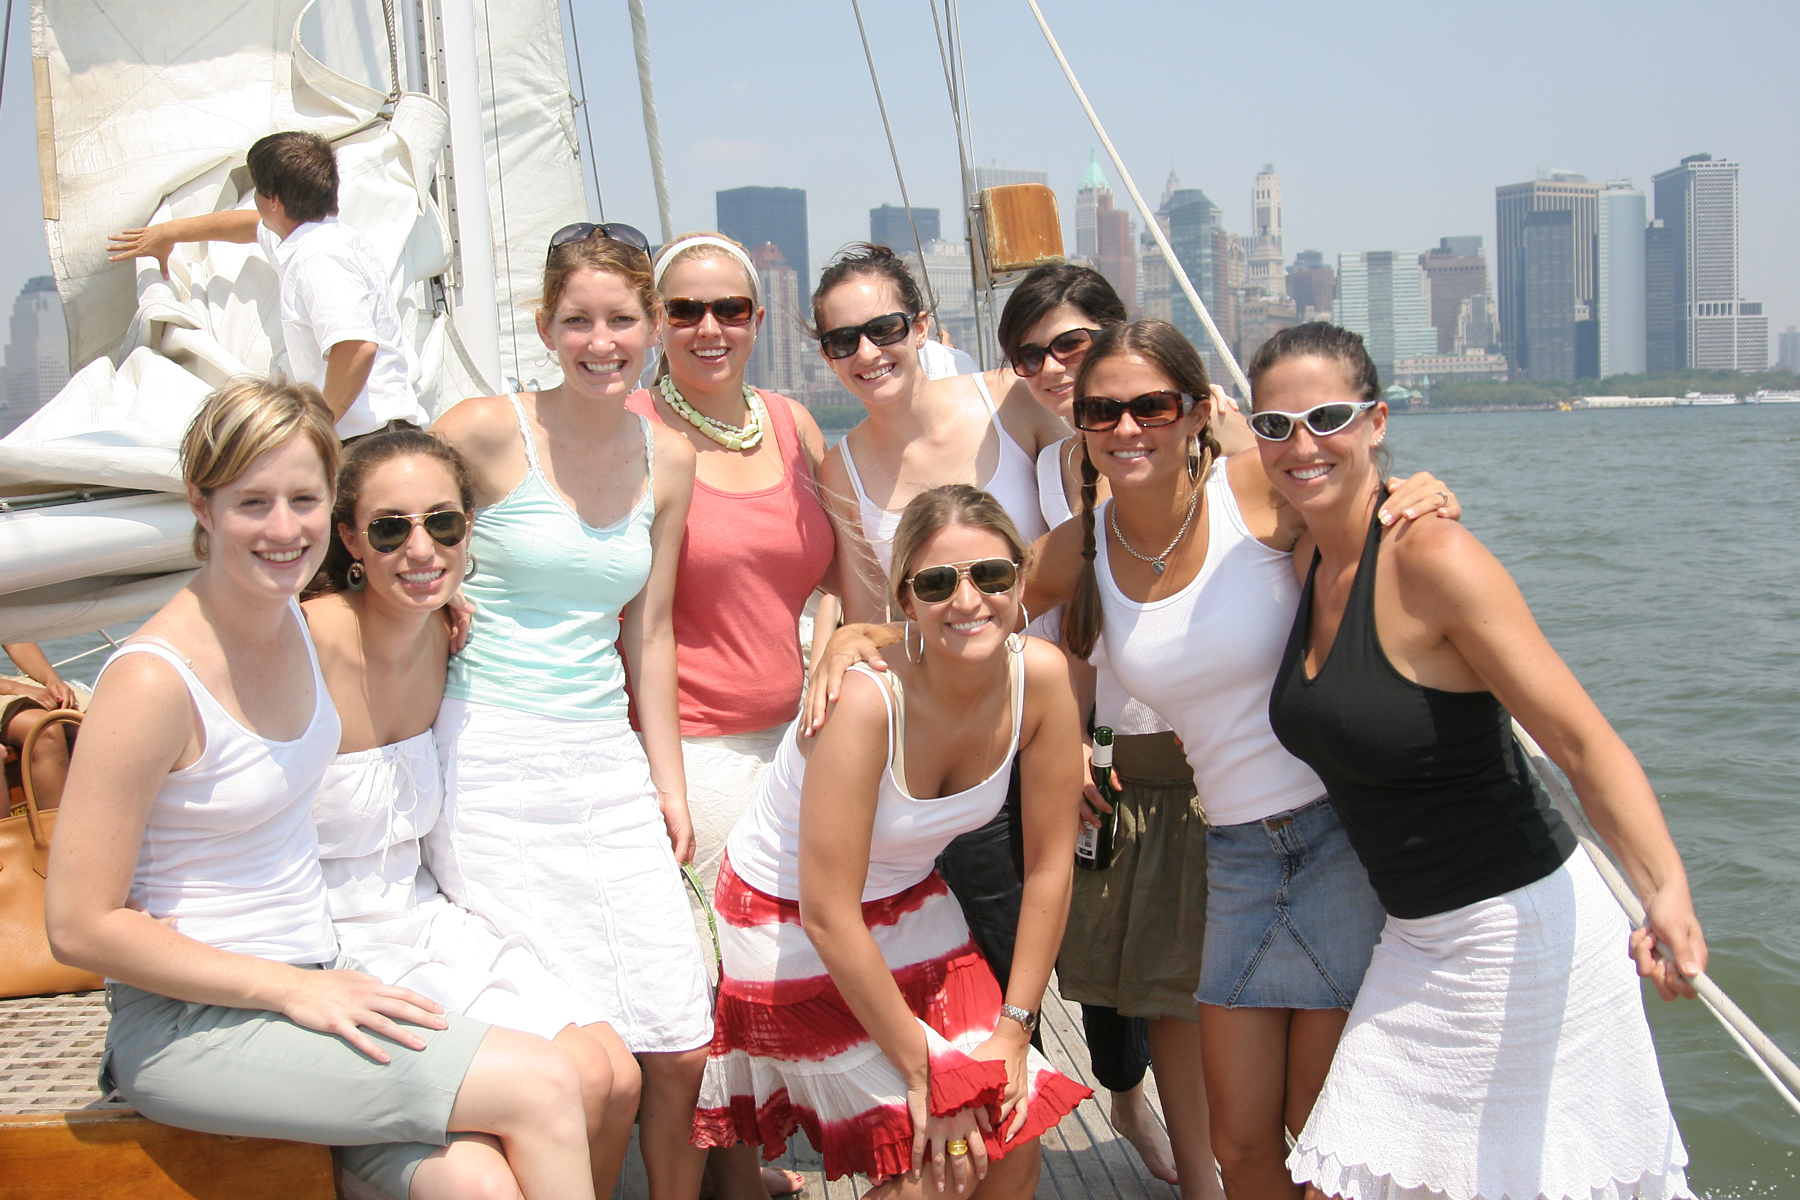 Full Venue event space at Manhattan By Sail in New York City, NYC, NY/NJ Area